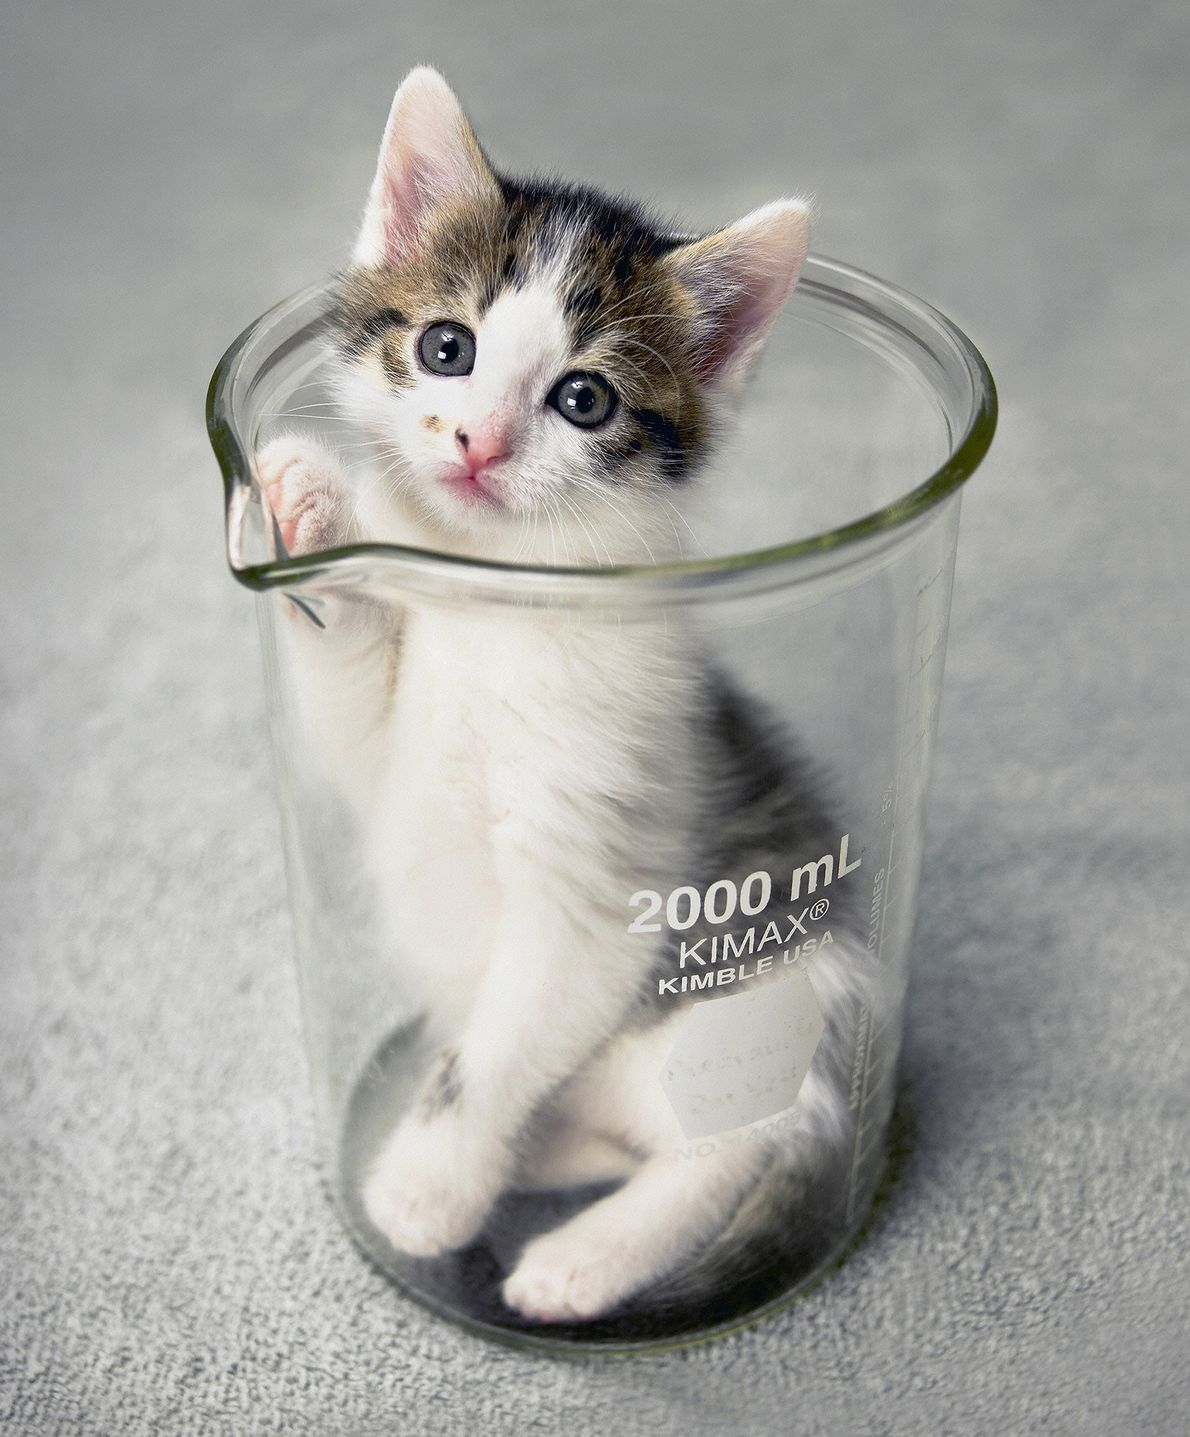 The world's first cloned cat peeks its head out of a beaker at Texas A&M University ...